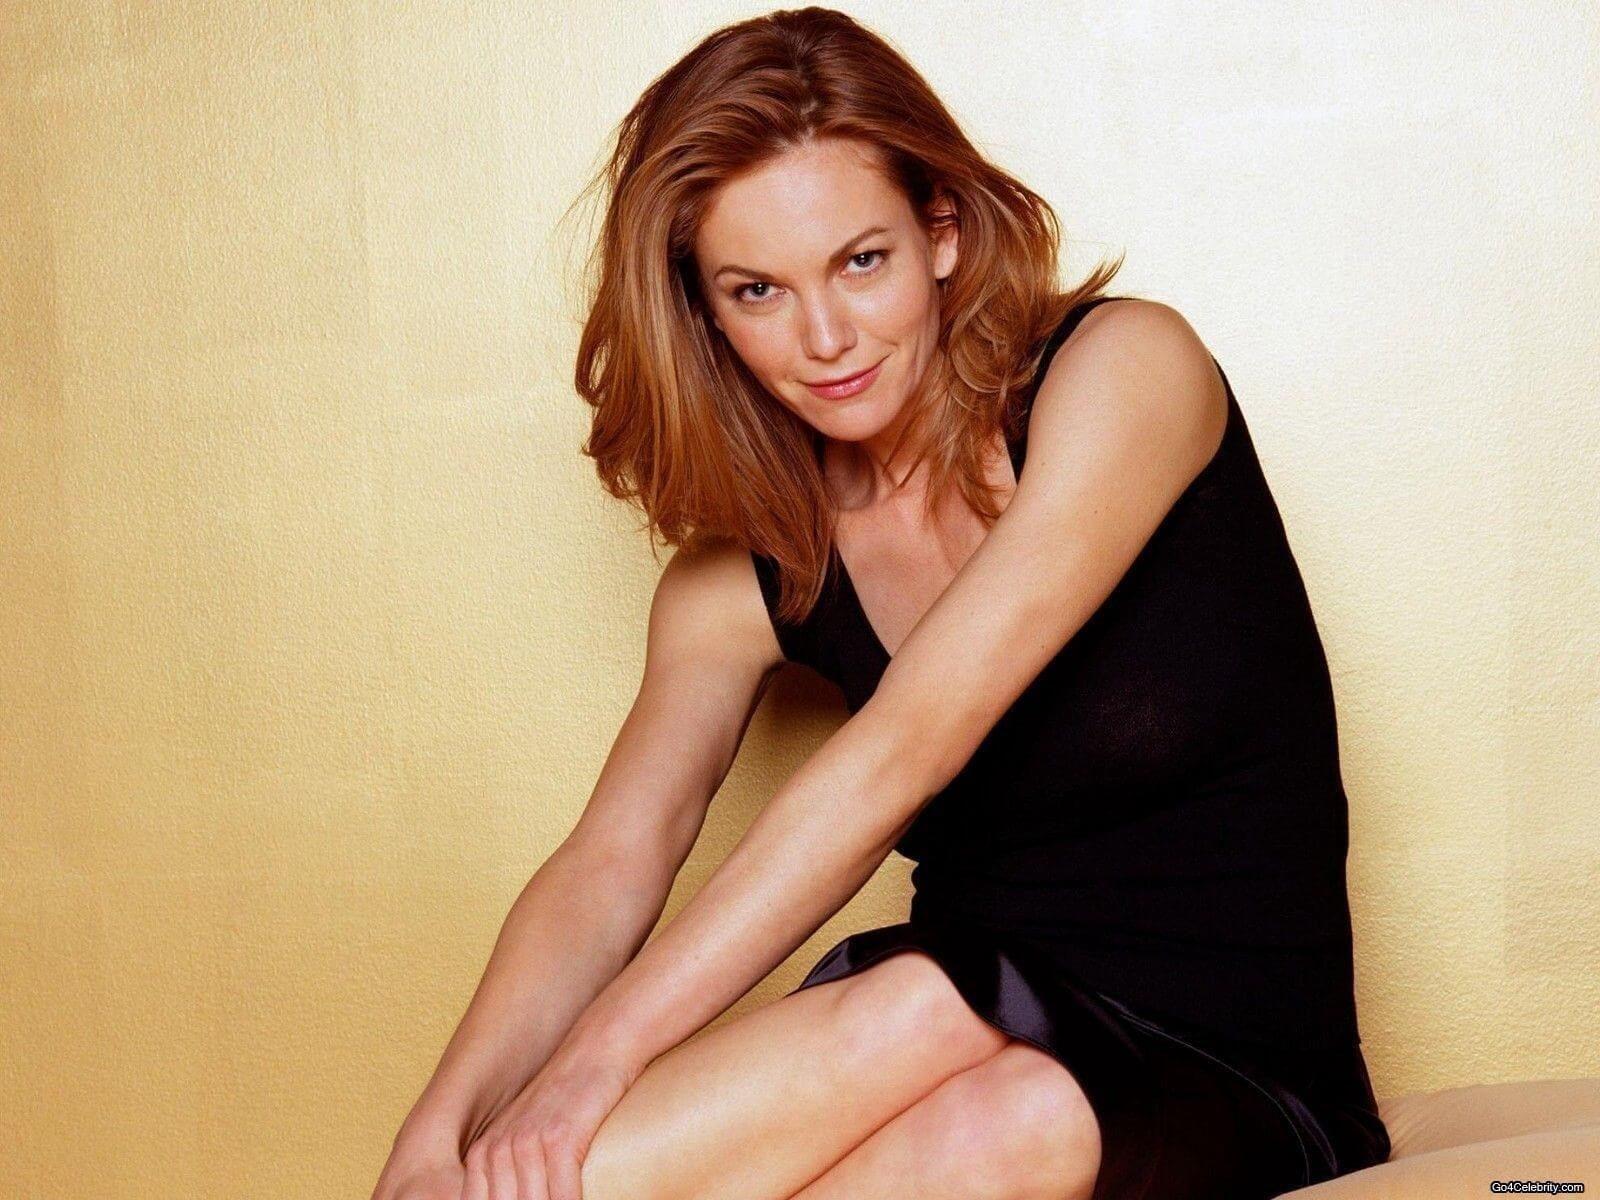 49 Hot Pictures Of Diane Lane Which Are Too Hot To Handle